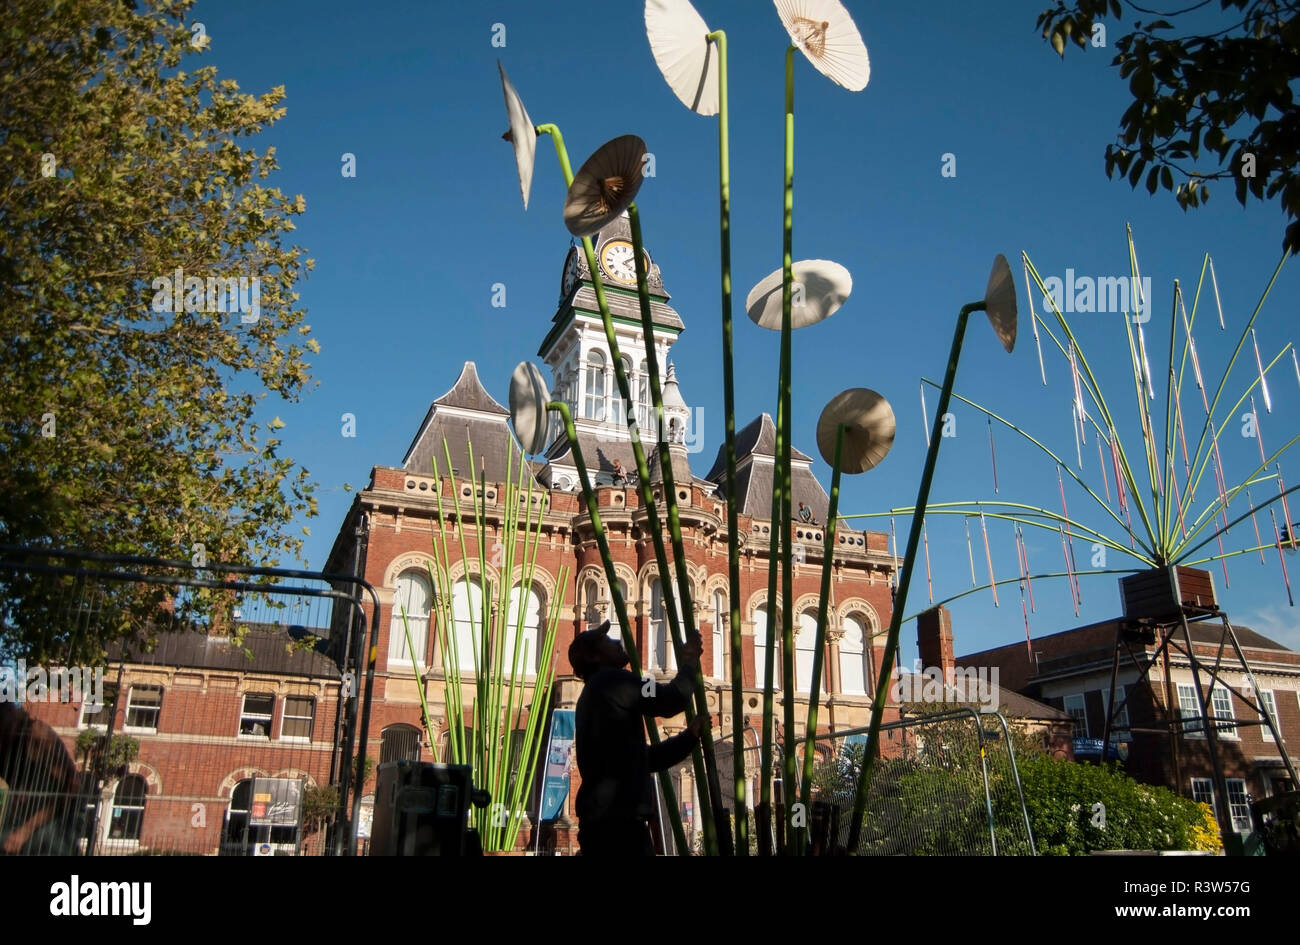 Grantham/England-September 27, 2018.Man in the dark making an installation for the Gravity fields event in front of the Guildhall Arts Centre. - Stock Image